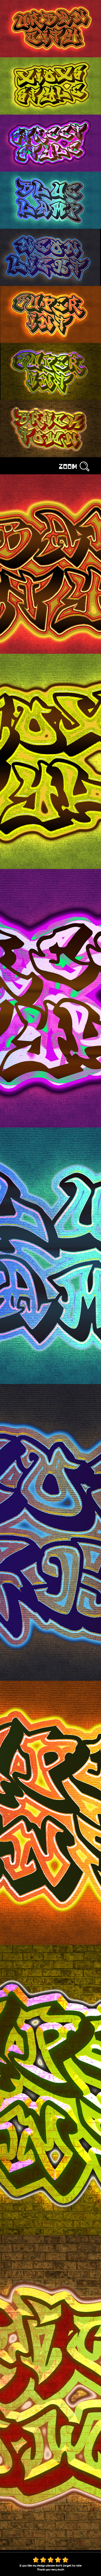 New Graffiti Text Styles - Text Effects Styles